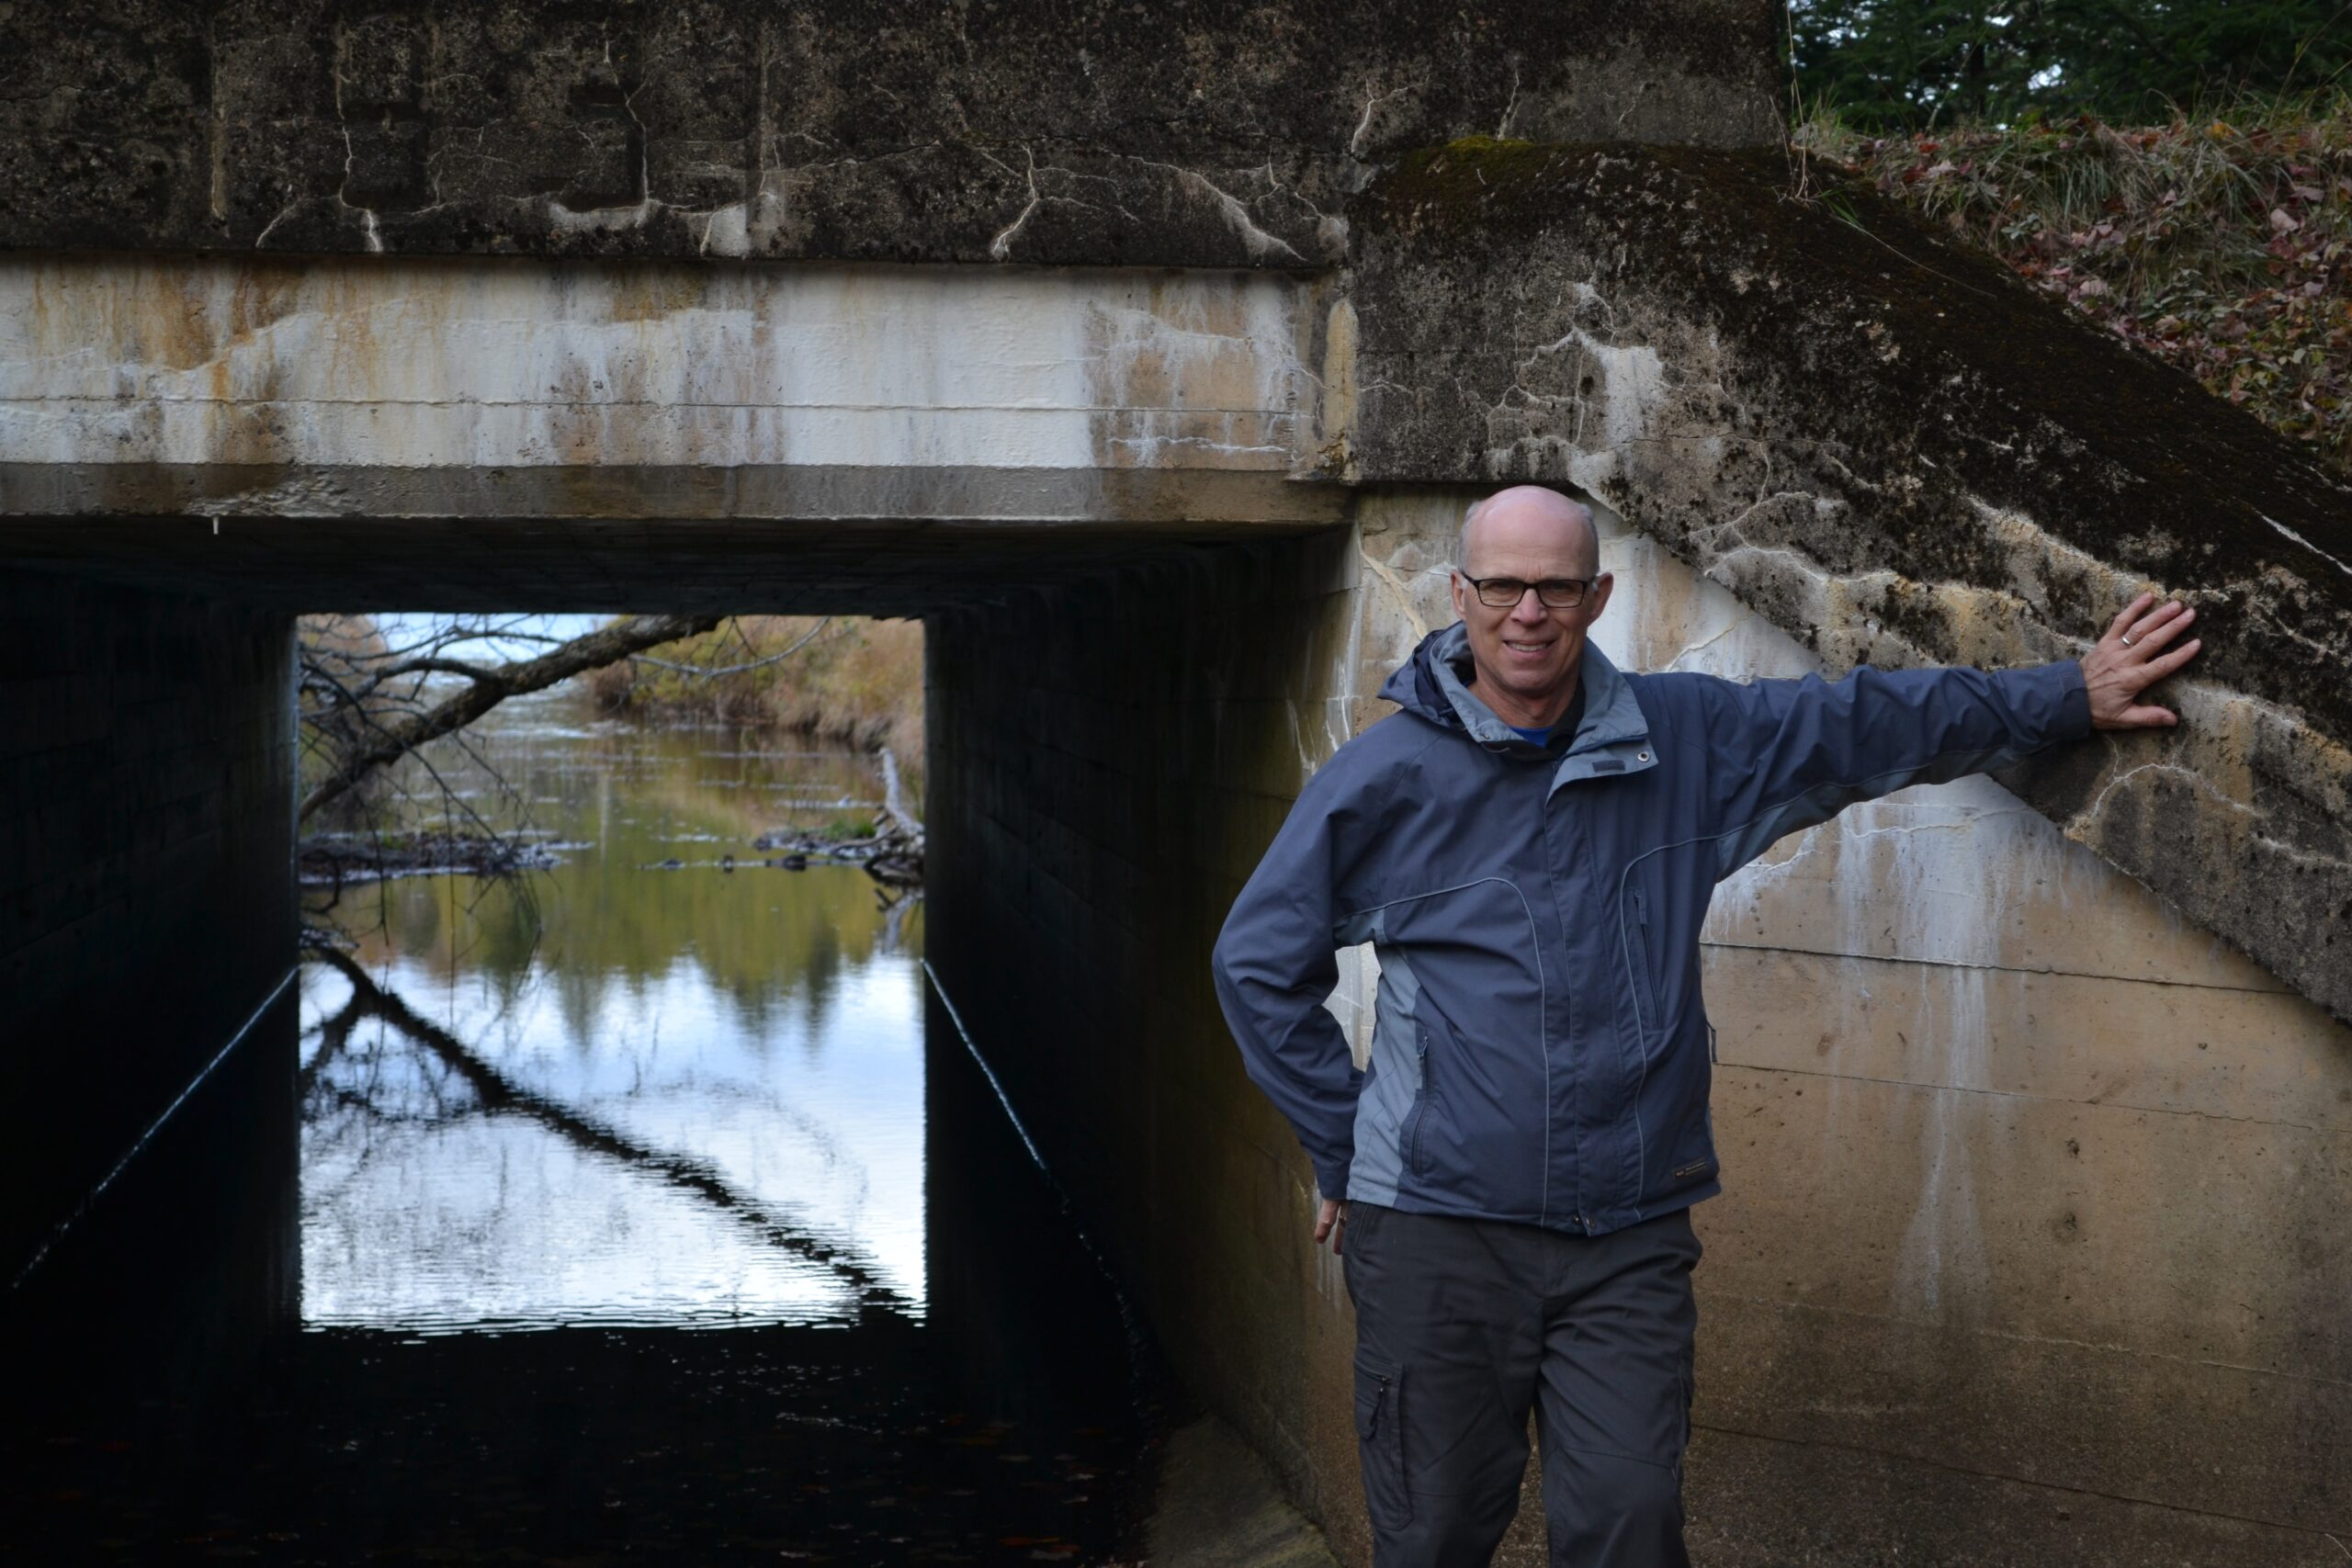 Bald man in a rain jacket standing in front of a concrete abutment.